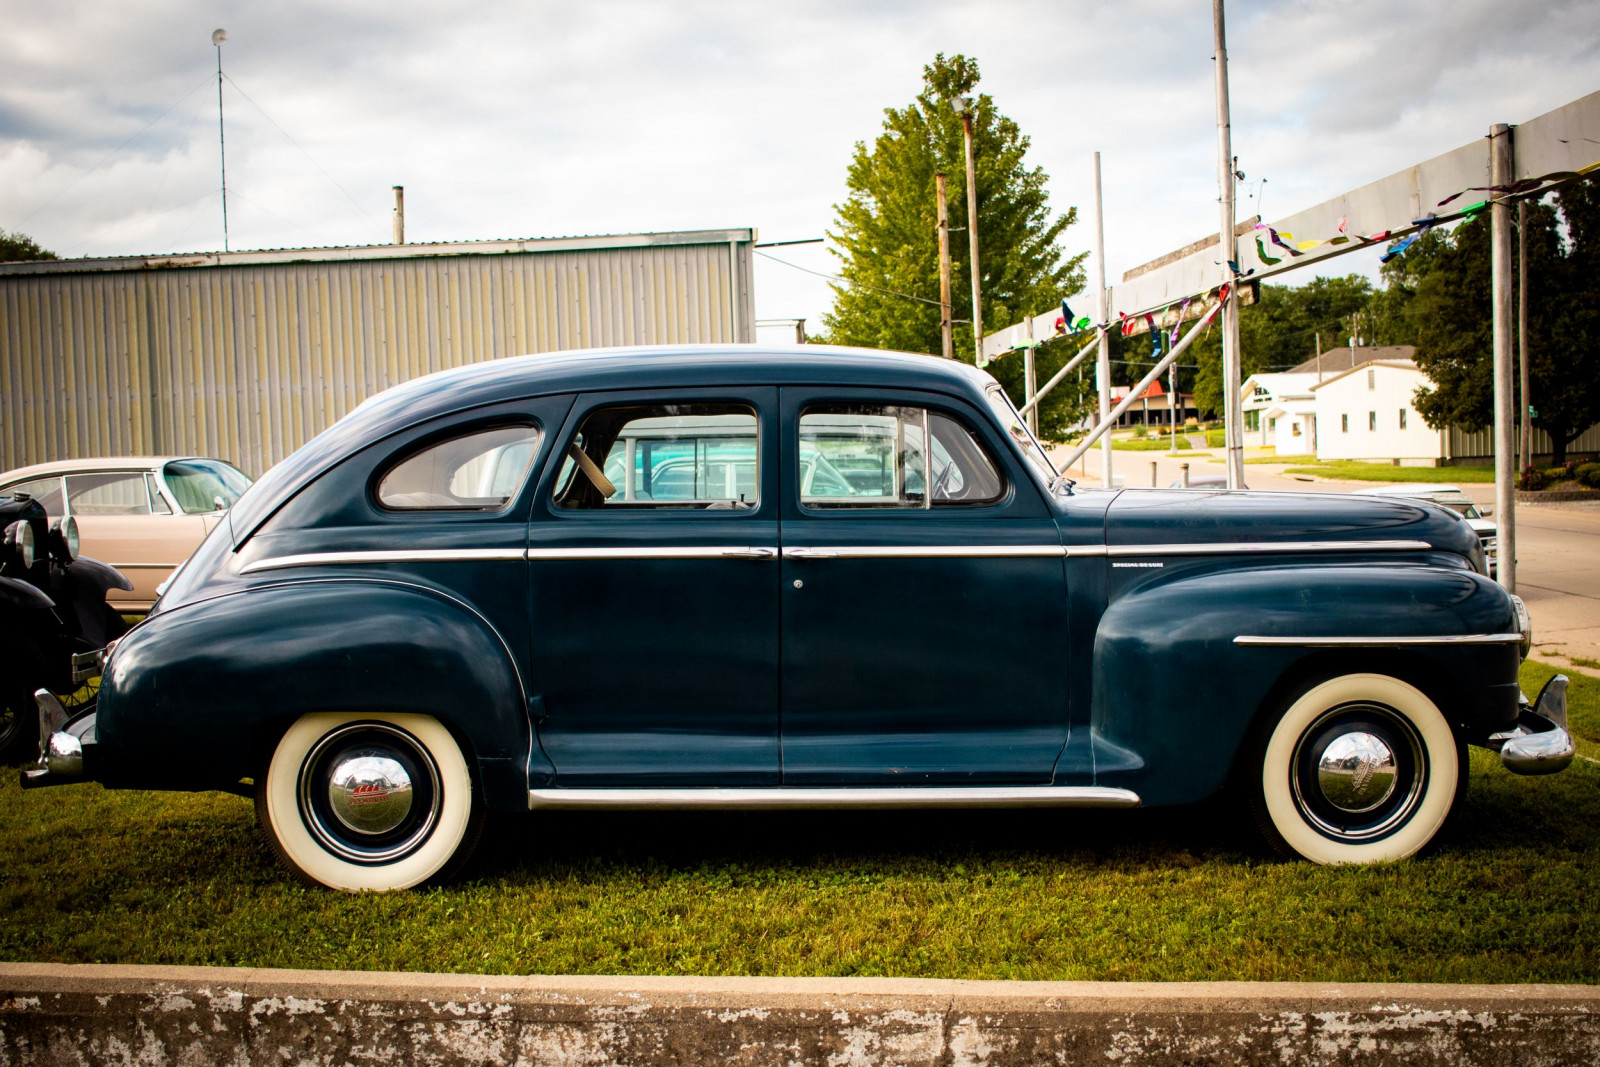 1947 Plymouth Special Deluxe  P15 4dr Sedan - Image 4